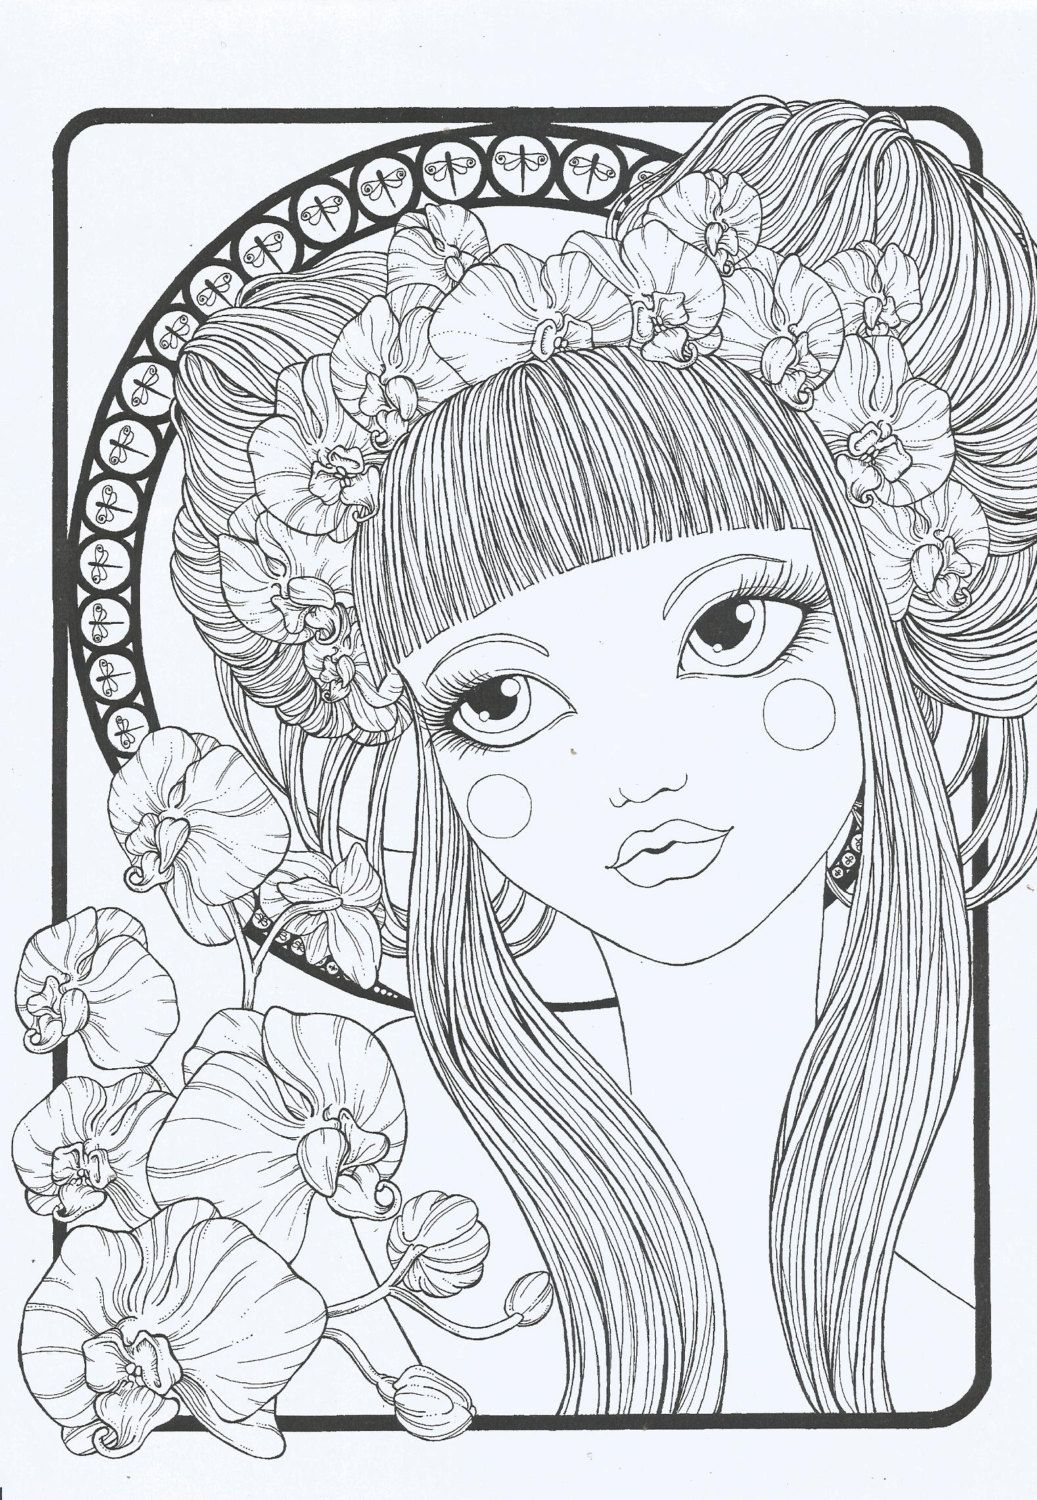 Coloring Book Floral Girls Pattern Coloring Pages Coloring Books Cute Coloring Pages